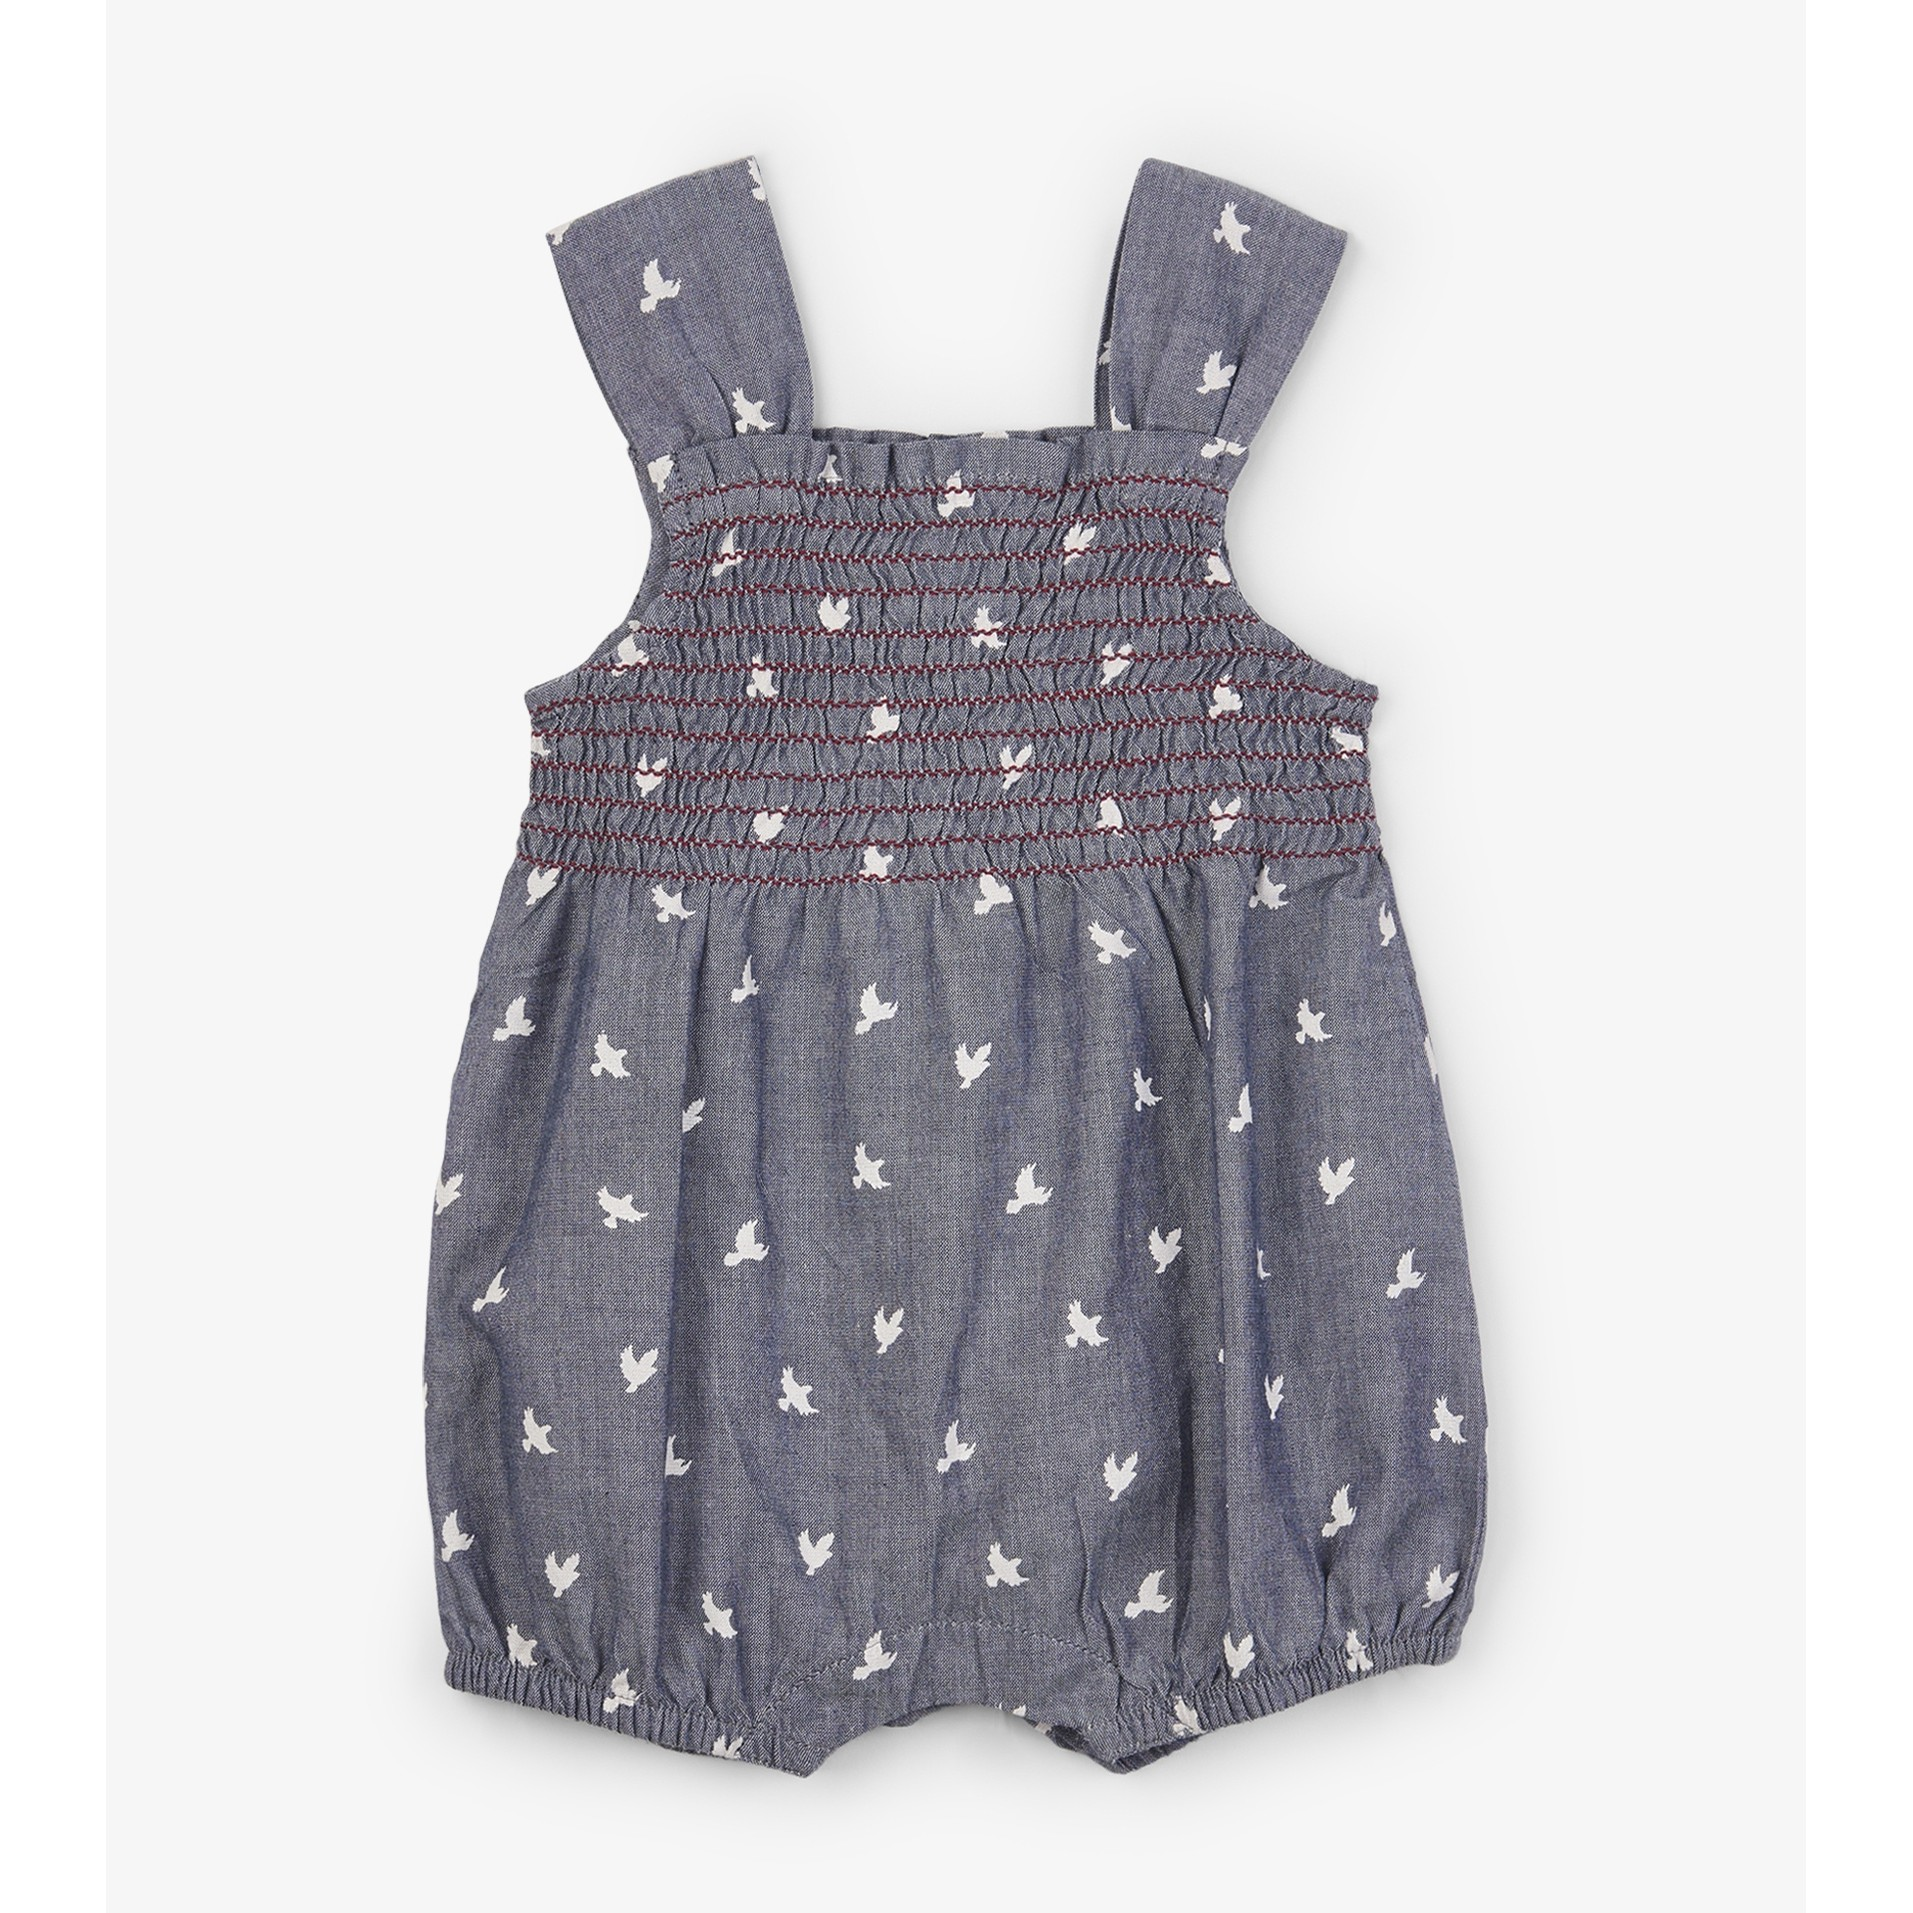 Soaring Sparrows Baby Bubble Romper